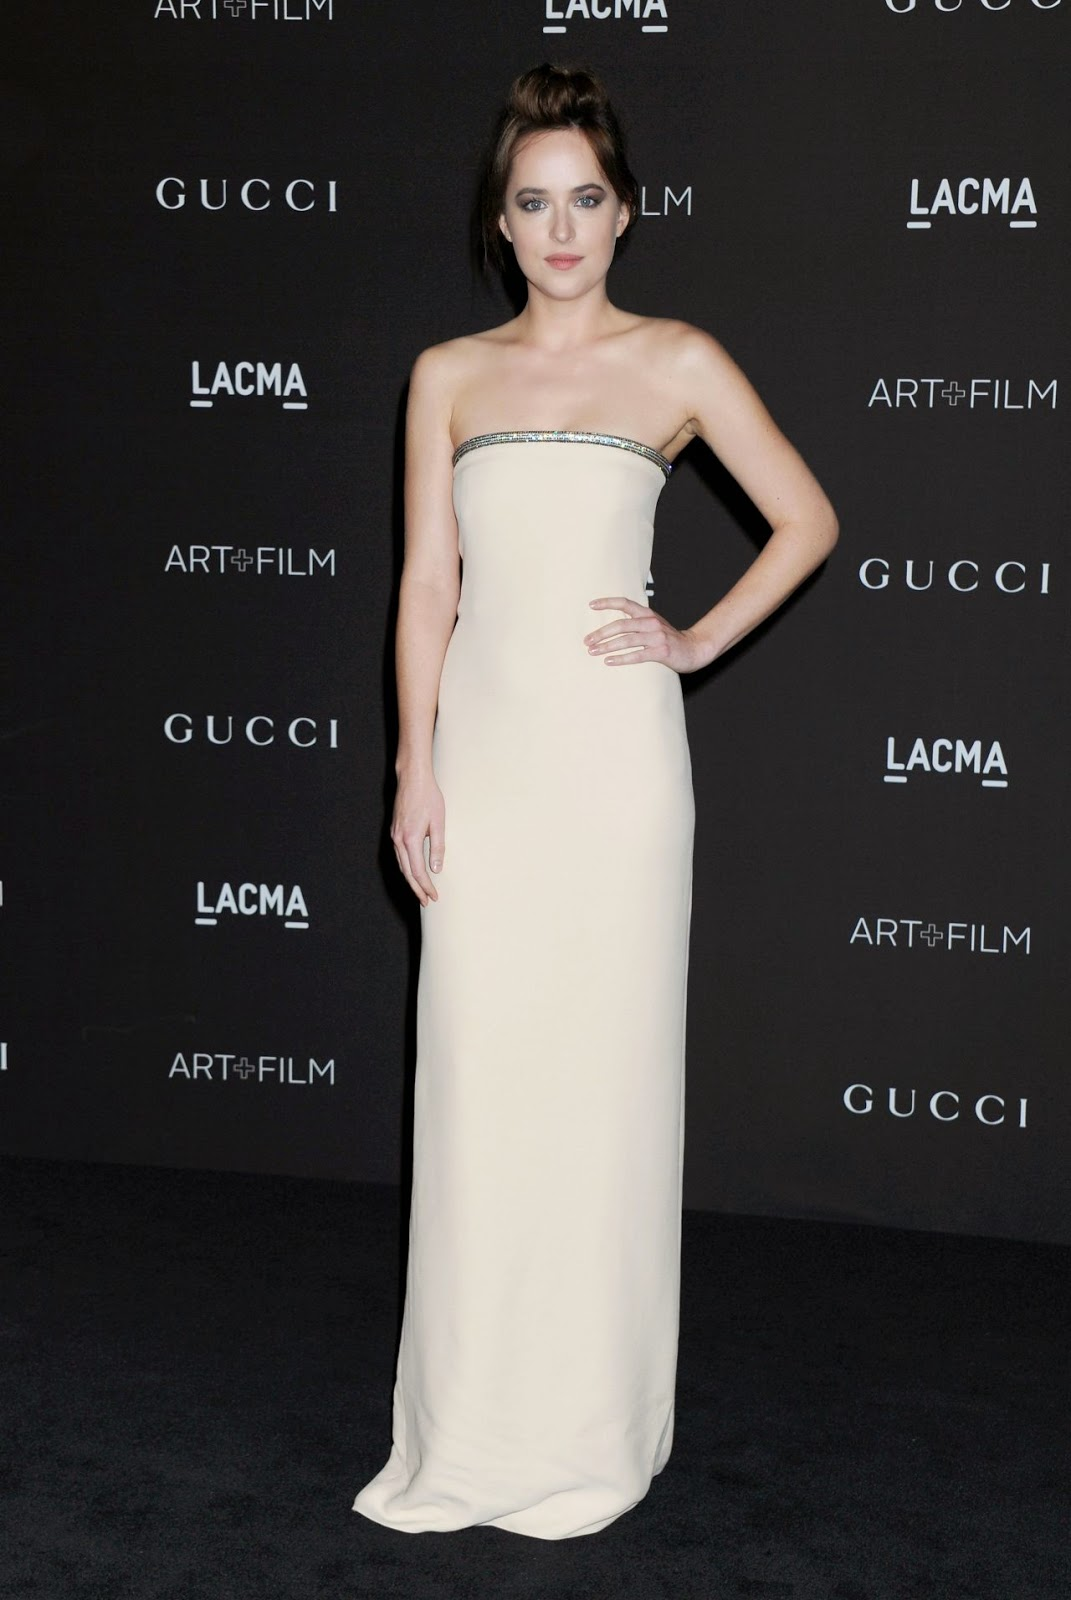 Dakota Johnson is flawless in a strapless gown at the 2014 LACMA Art + Film Gala